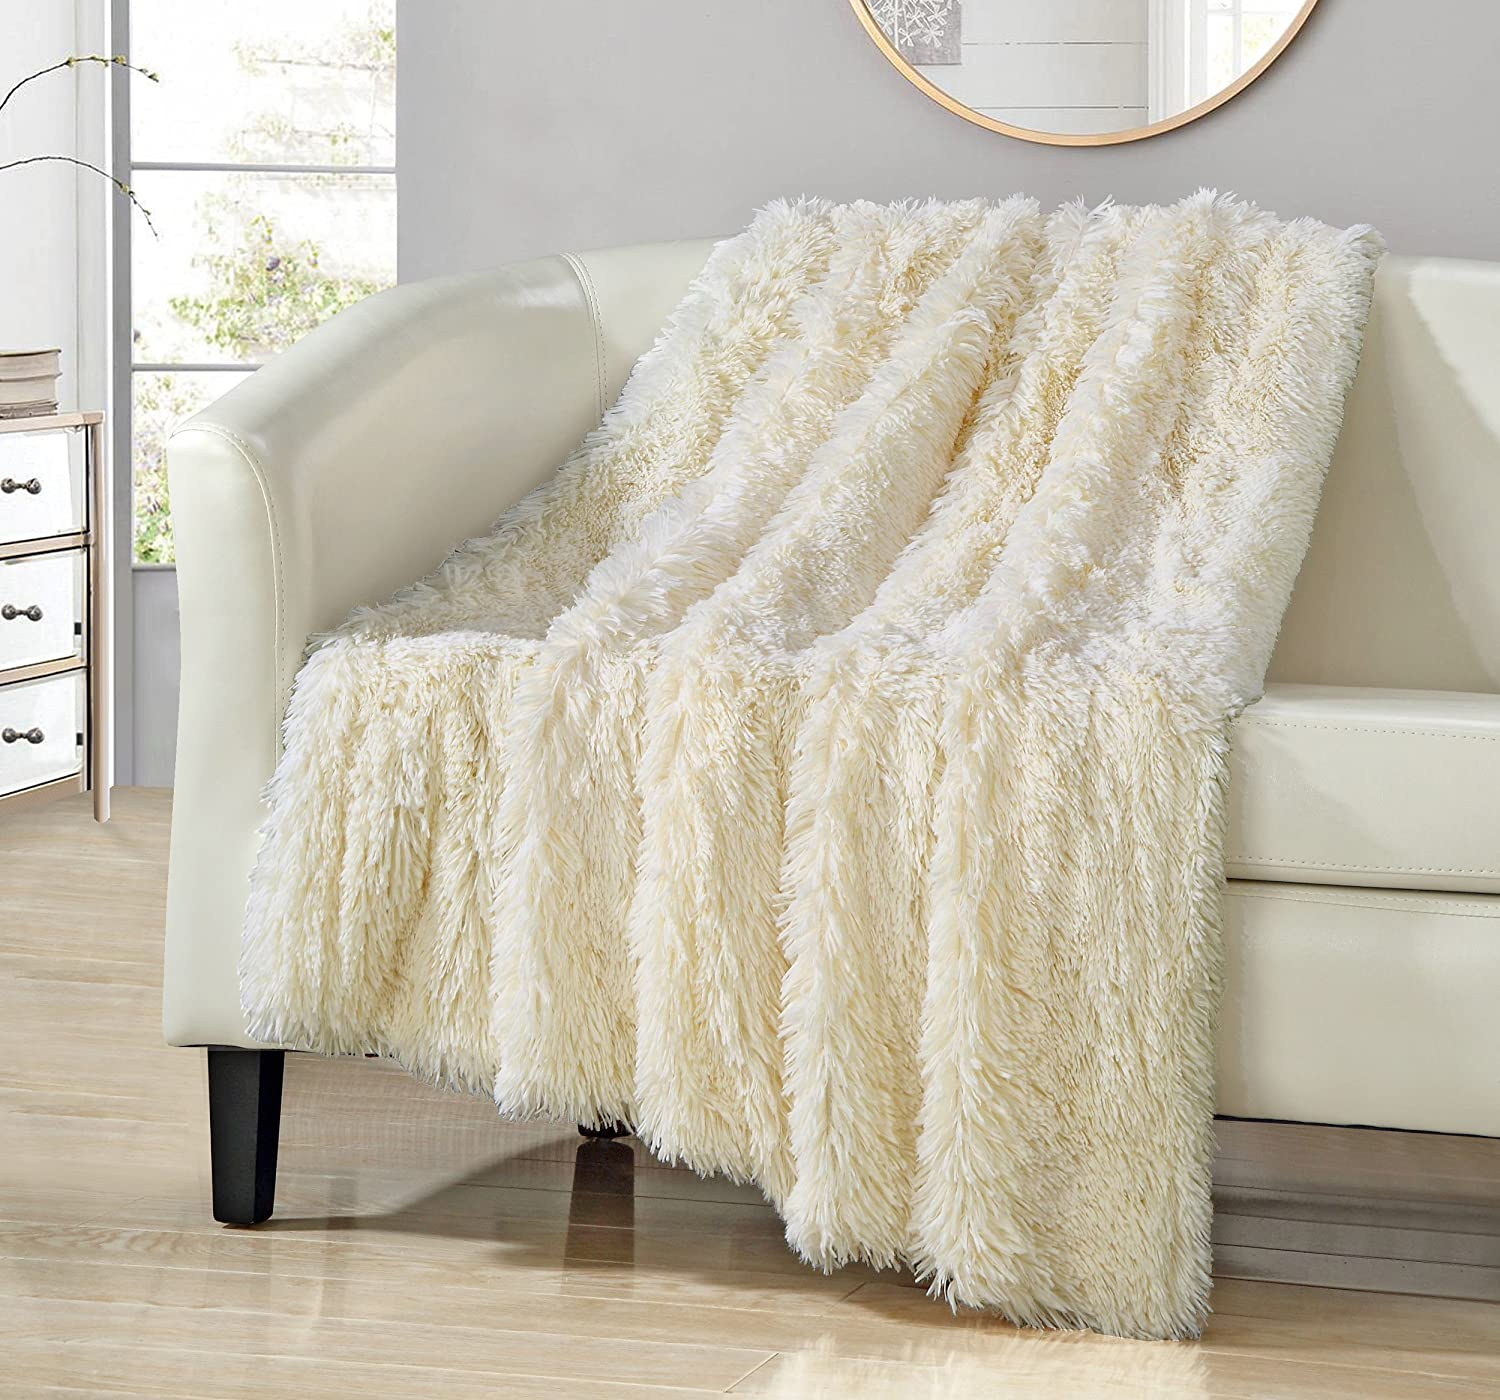 "Chic Home 1 Piece Anchorage Shaggy Faux Fur Supersoft Ultra Plush Decorative Throw Blanket 50 x 60"" White (50 x 60"", Beige)"